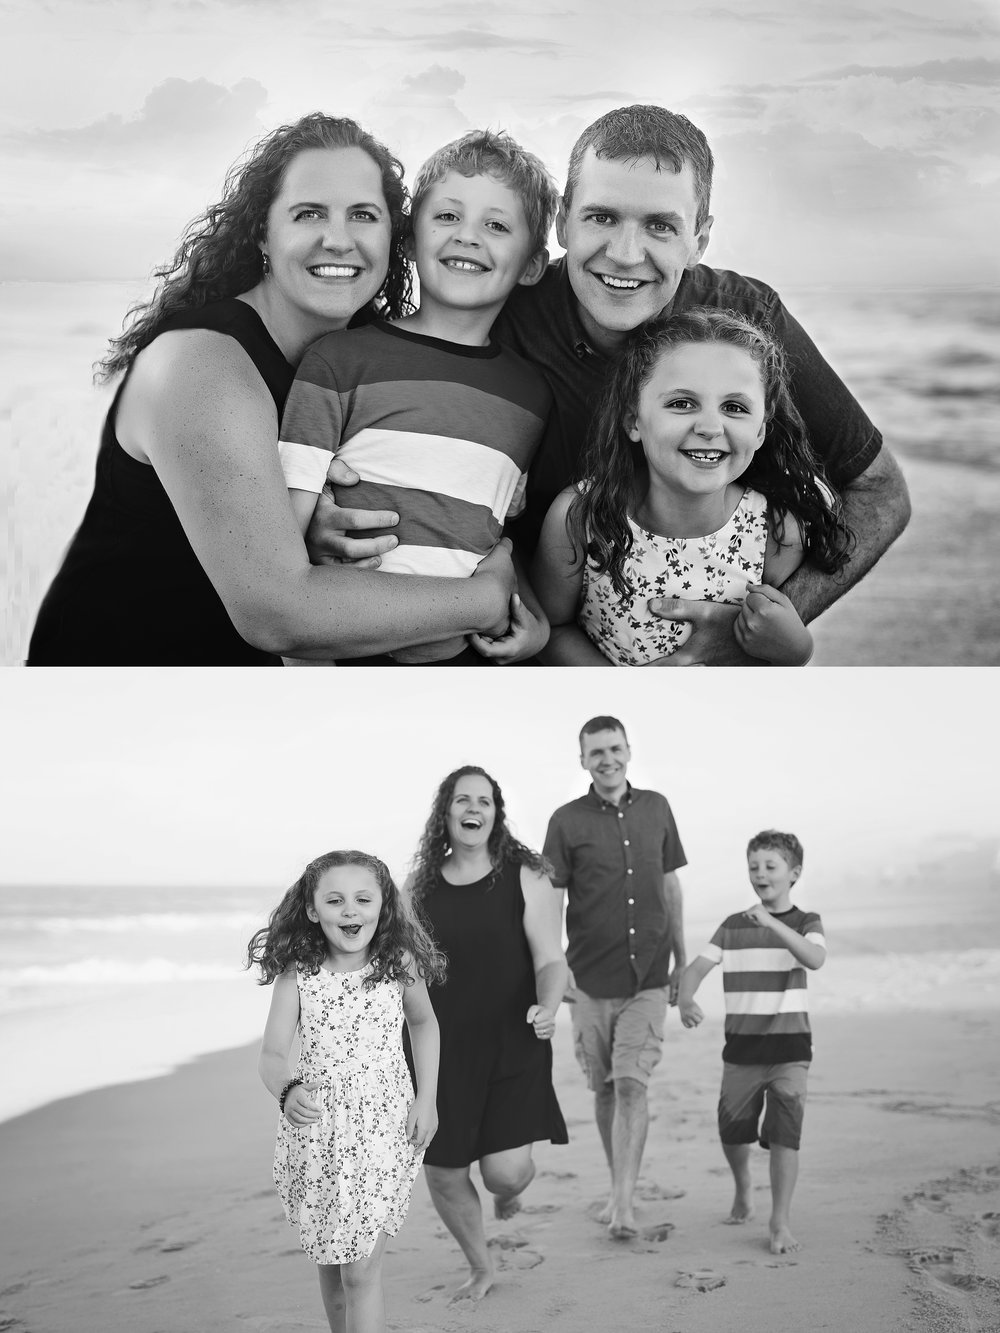 beach-family-photography-black-and-white-outerbanks-kate-montaner-photography-loudoun-family-and-childrens-photographer